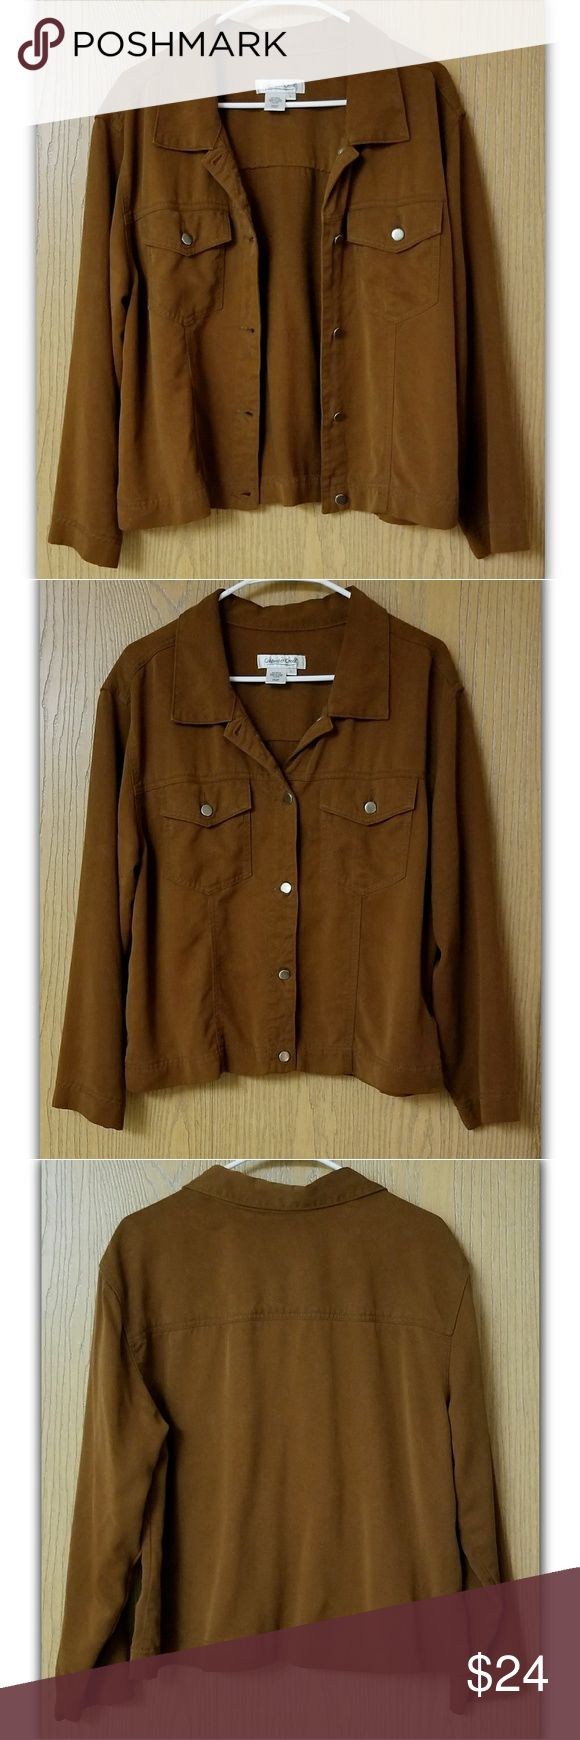 """COLDWATER CREEK 100% Cotton Jean Jacket Like new, this milk chocolate colored jacket is PERFECT for cooler weather!  Traditional jean jacket styling without side pockets, super soft 100% Cotton/Tencel.  Length: 24"""" approx. from top of shoulder at collar Chest: 22"""" approx. side to side at armpit Coldwater Creek Jackets & Coats Jean Jackets"""